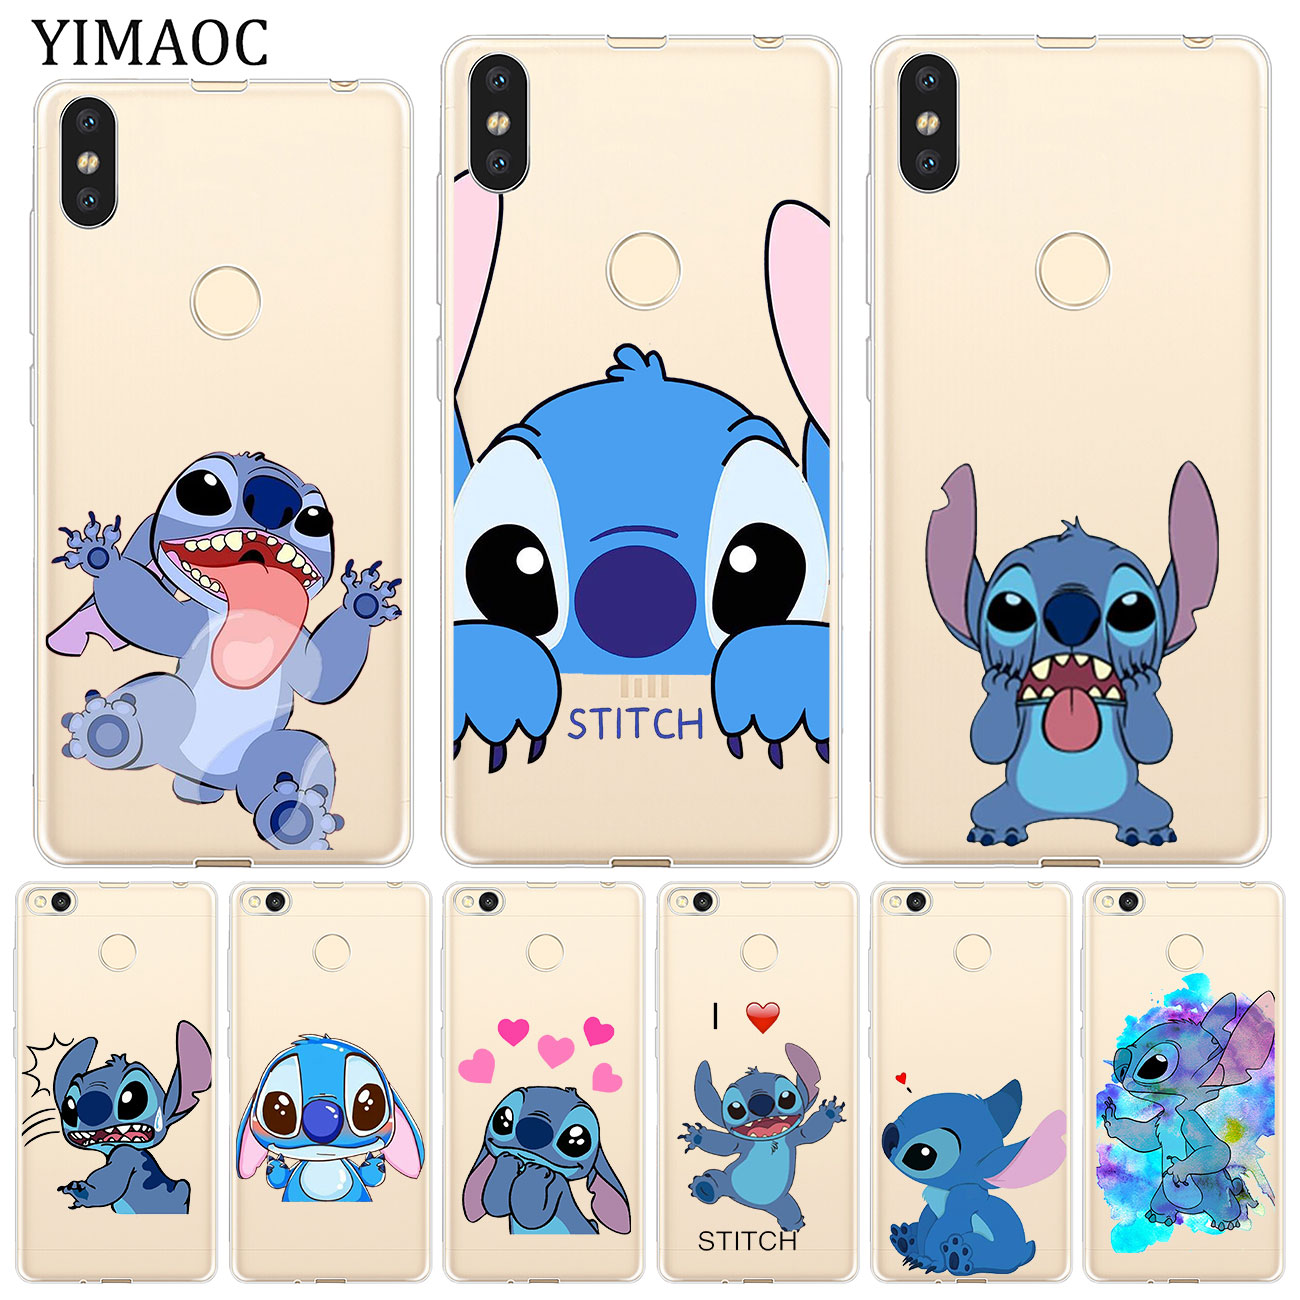 YIMAOC Lilo Stitch Pengiun Star Baby Soft Case for Xiaomi Redmi K20 Pro 7A 6A 4A 4X S2 GO Note 8 7 6 5 Plus 4 Cover